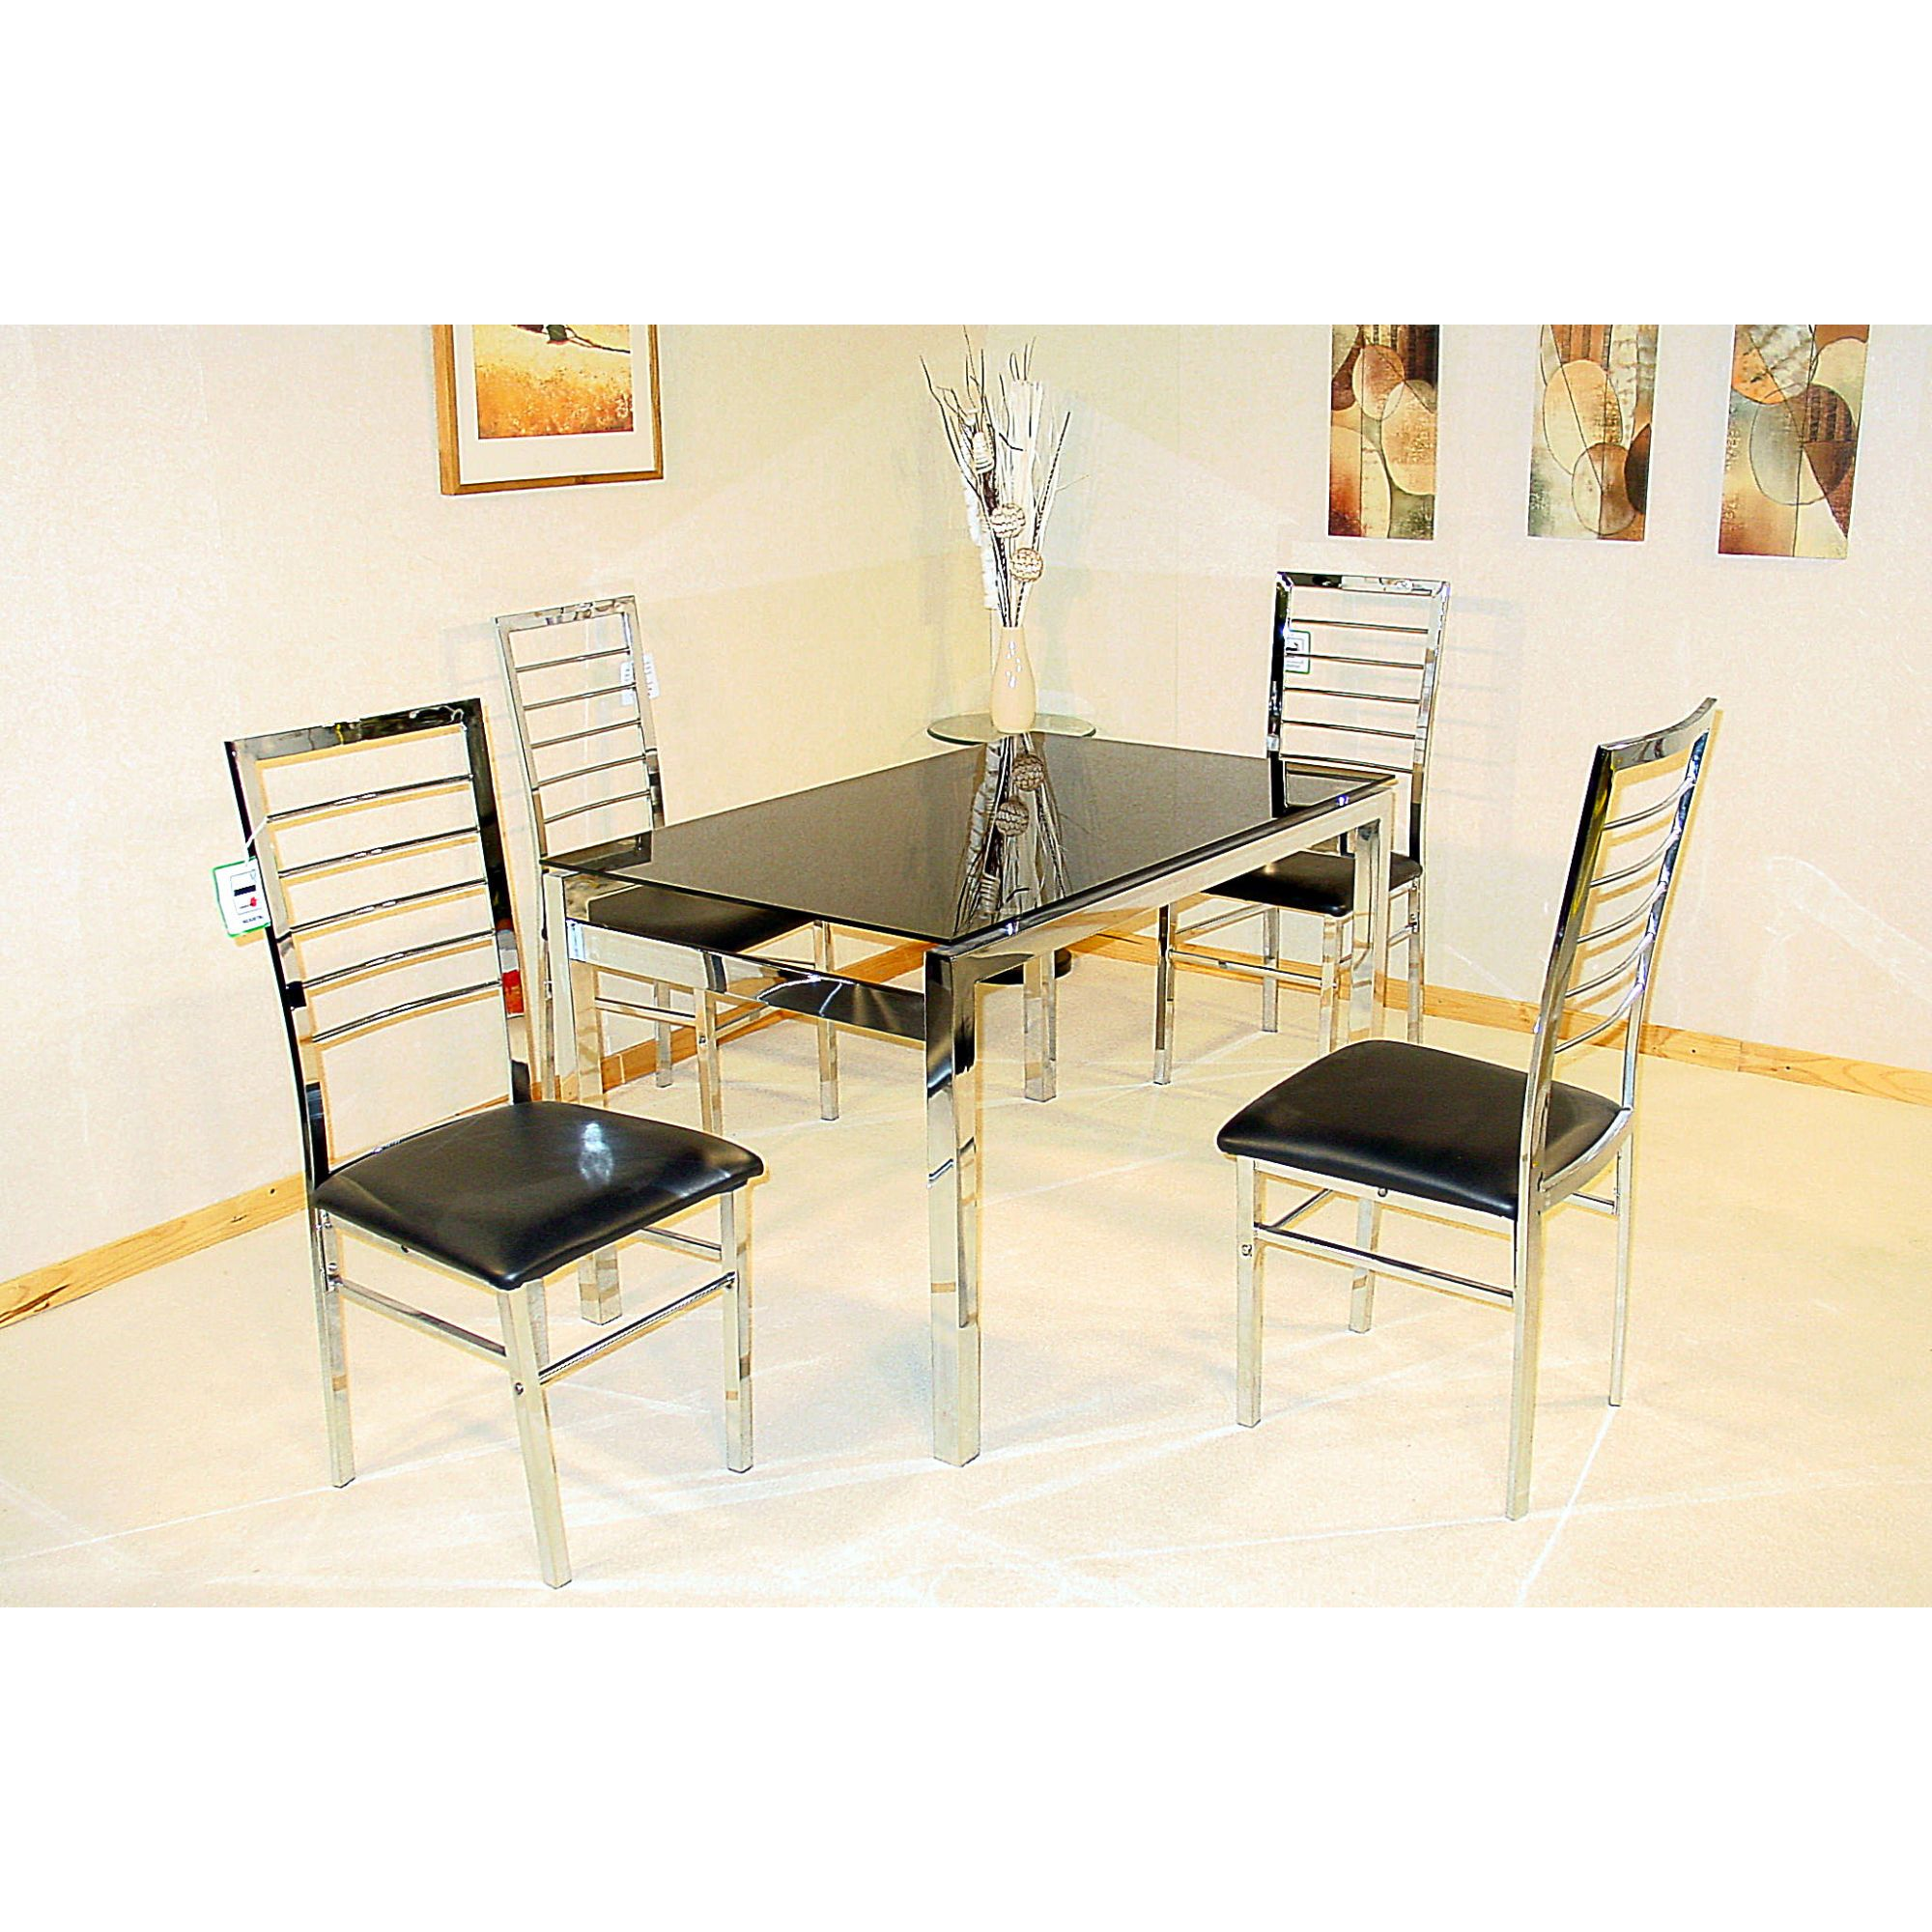 Heartlands Furniture Eton 5 Piece Dining Set at Tesco Direct